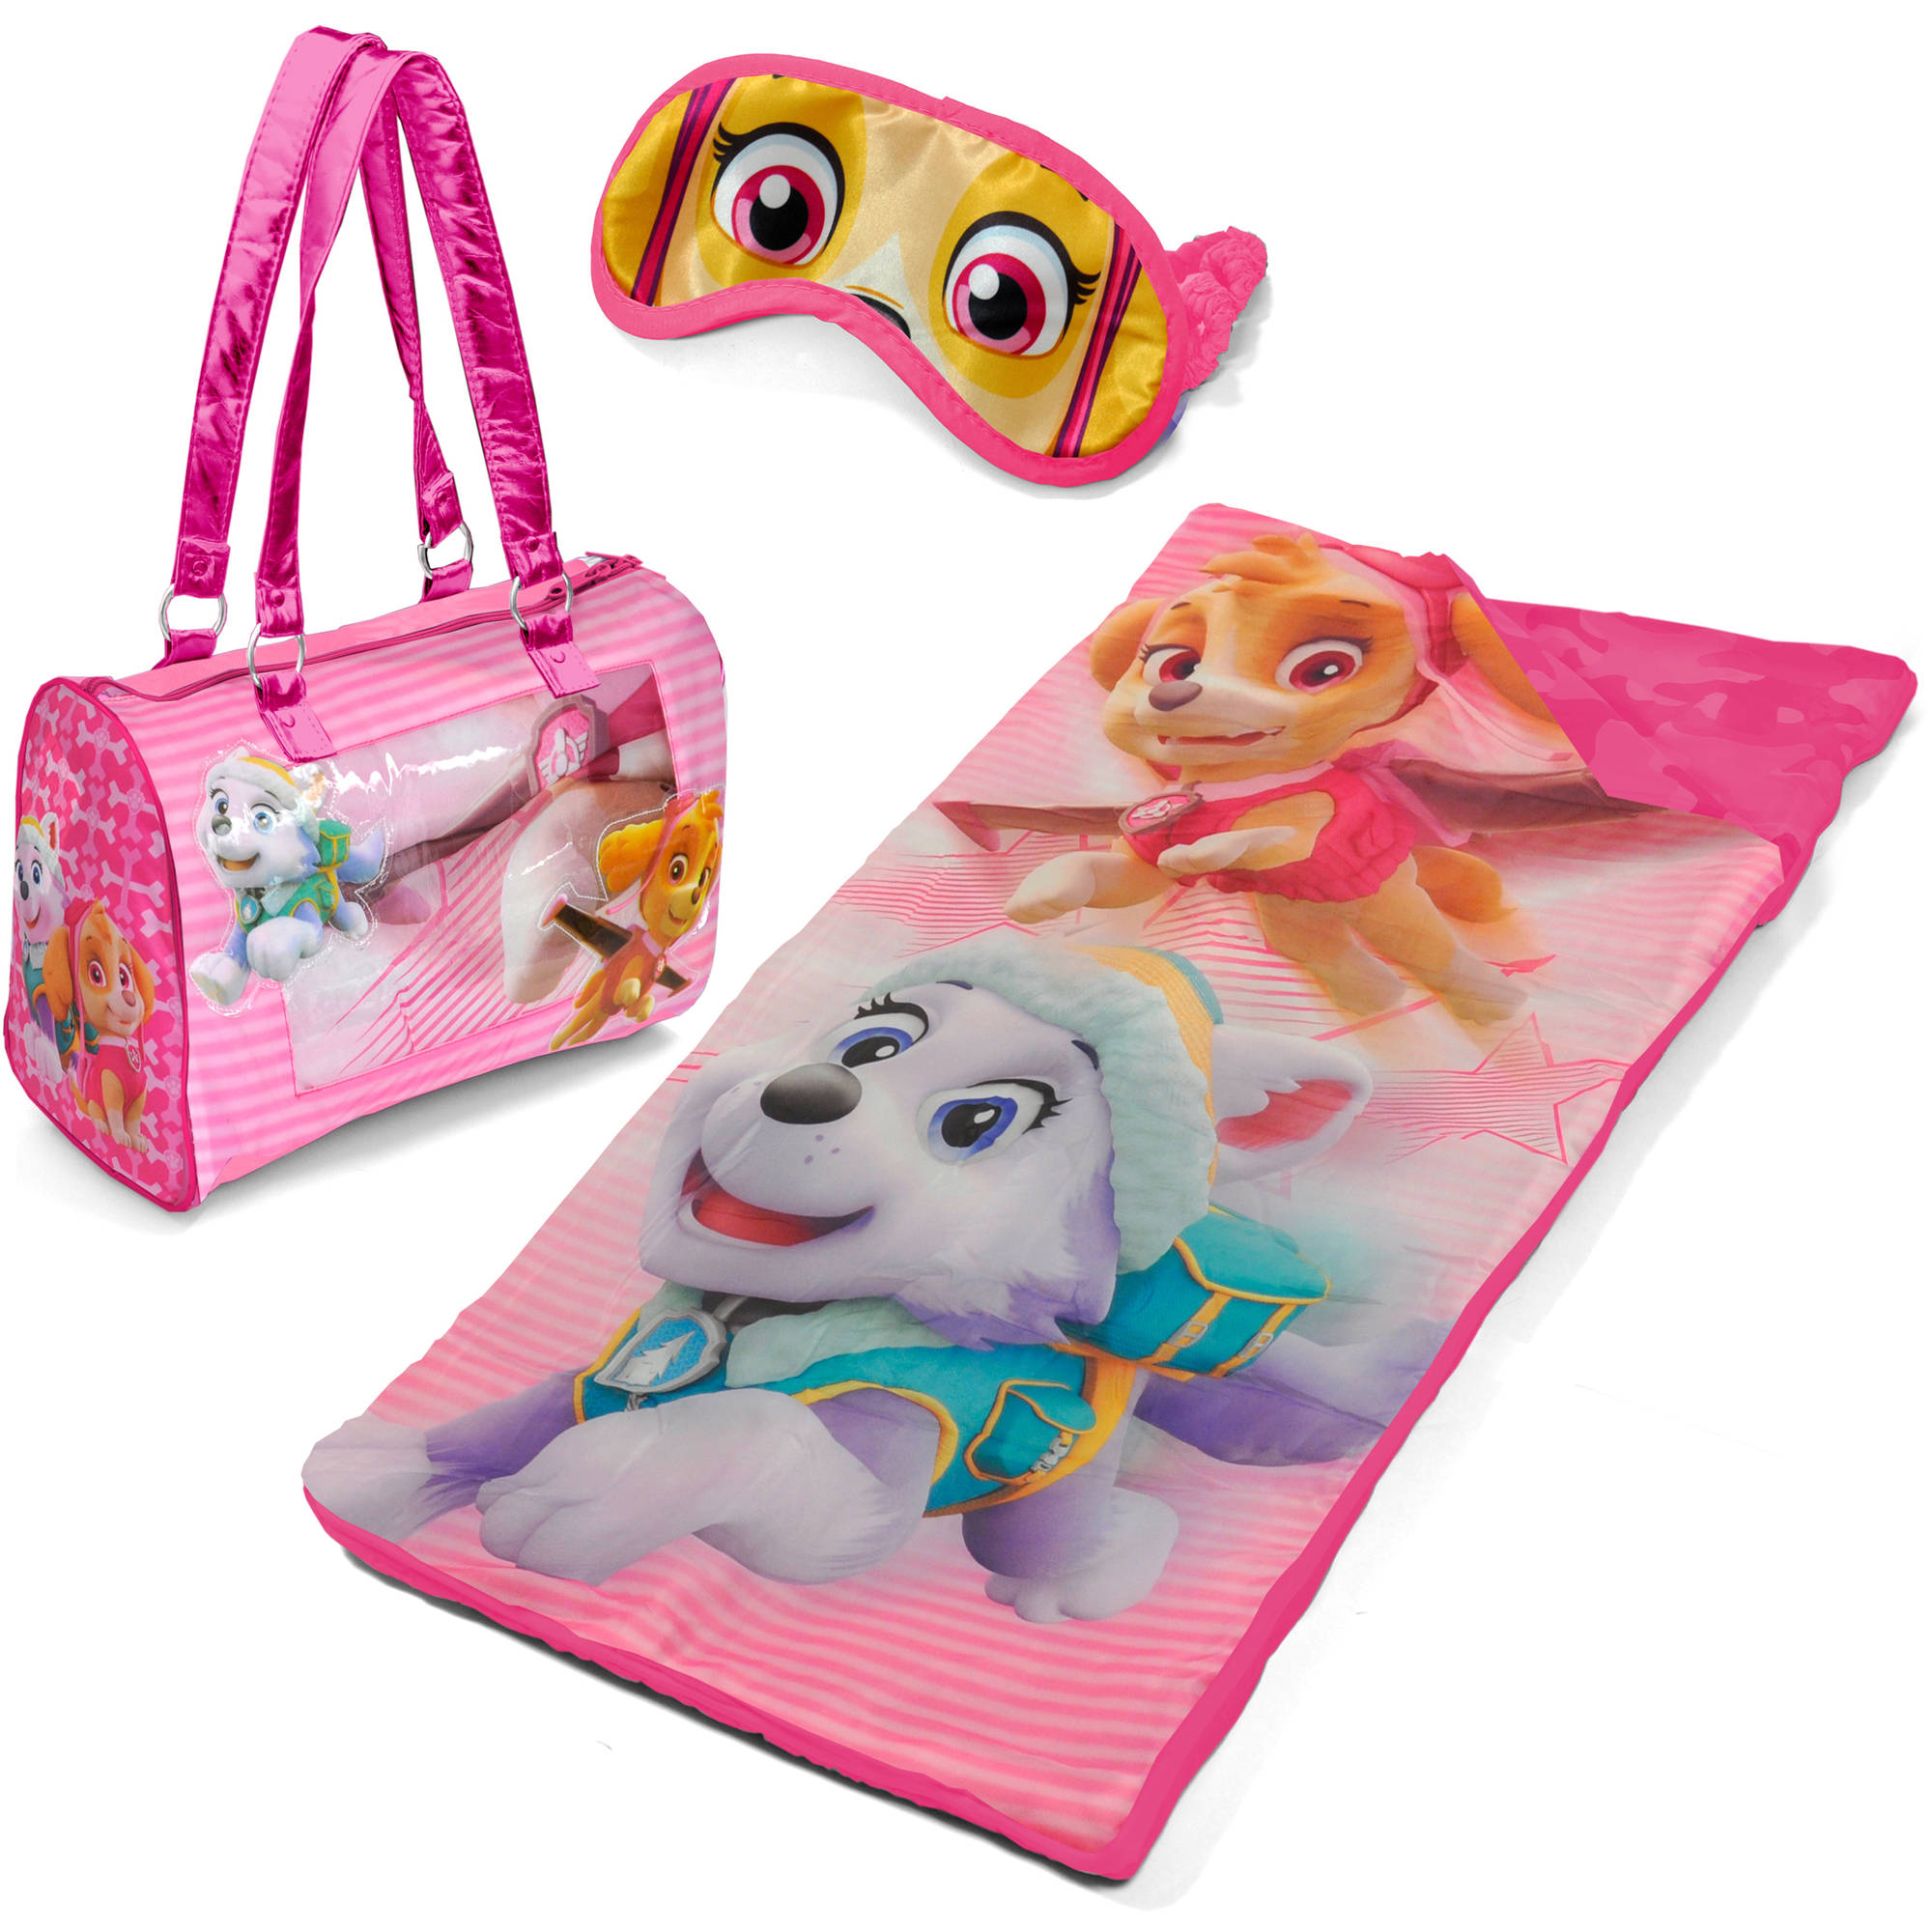 Paw Patrol Sleepover Purse Set with Eyemask